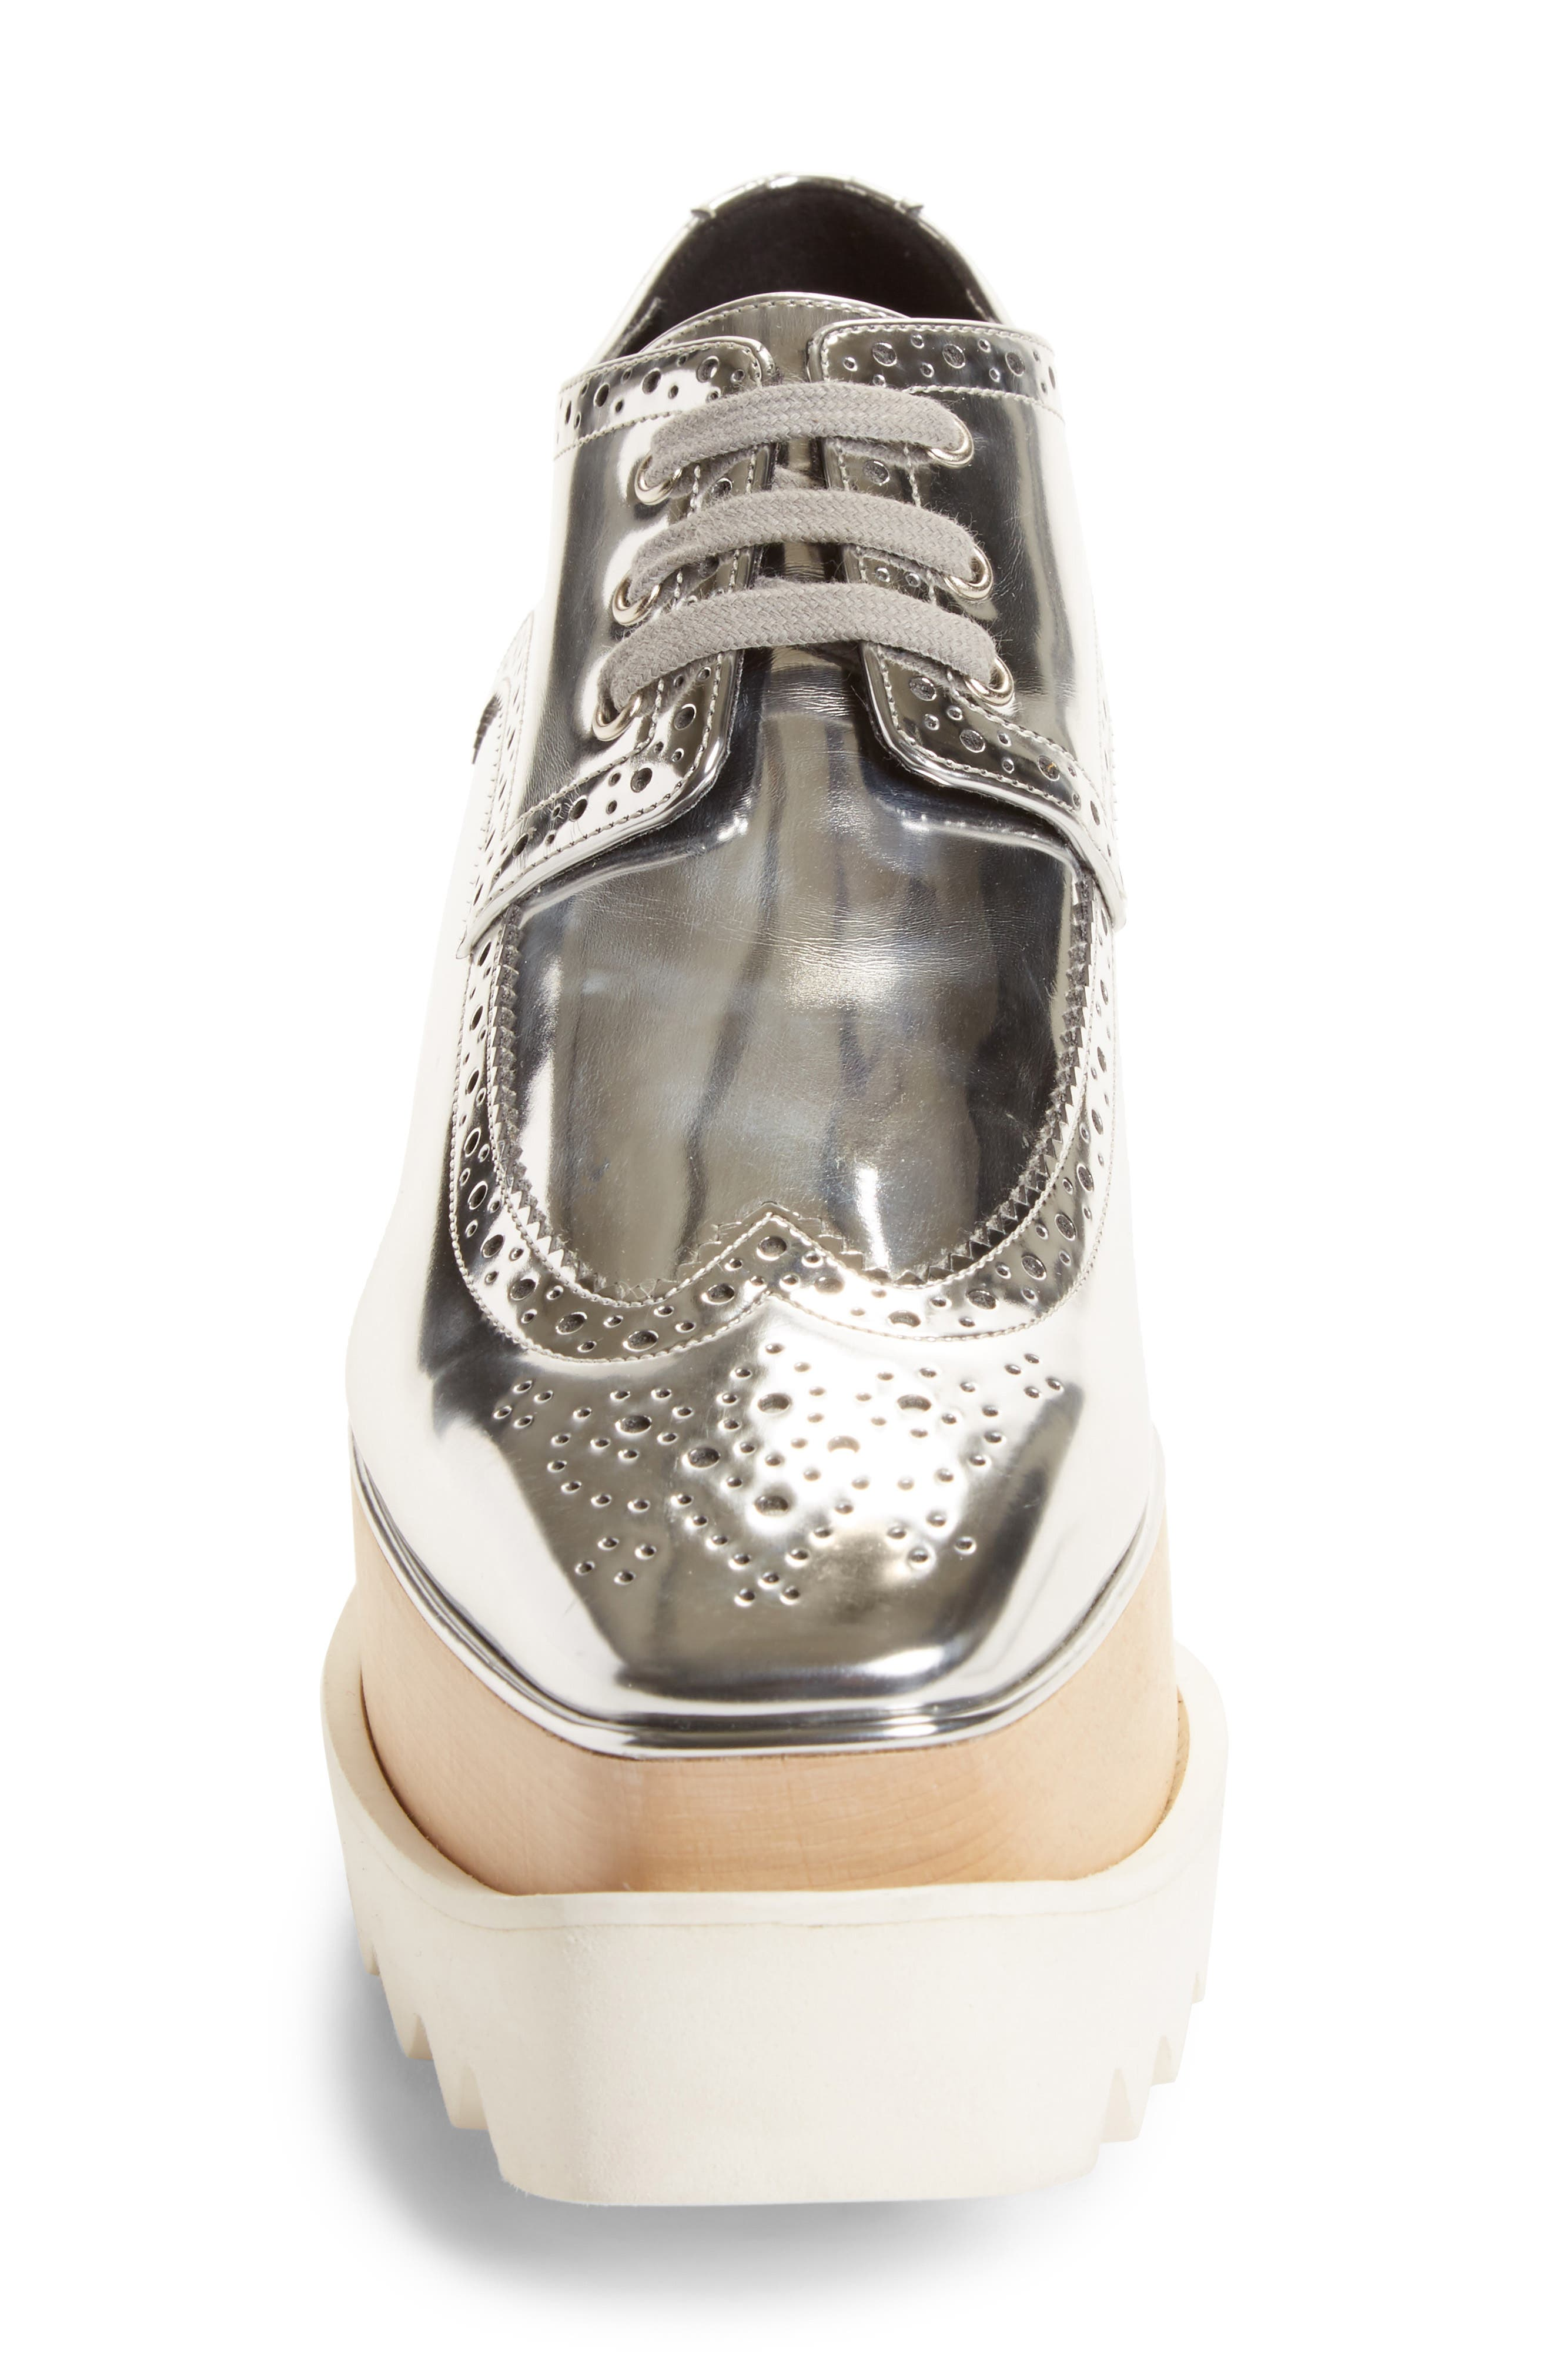 Elyse Brogue Platform Loafer,                             Alternate thumbnail 4, color,                             Metallic Silver